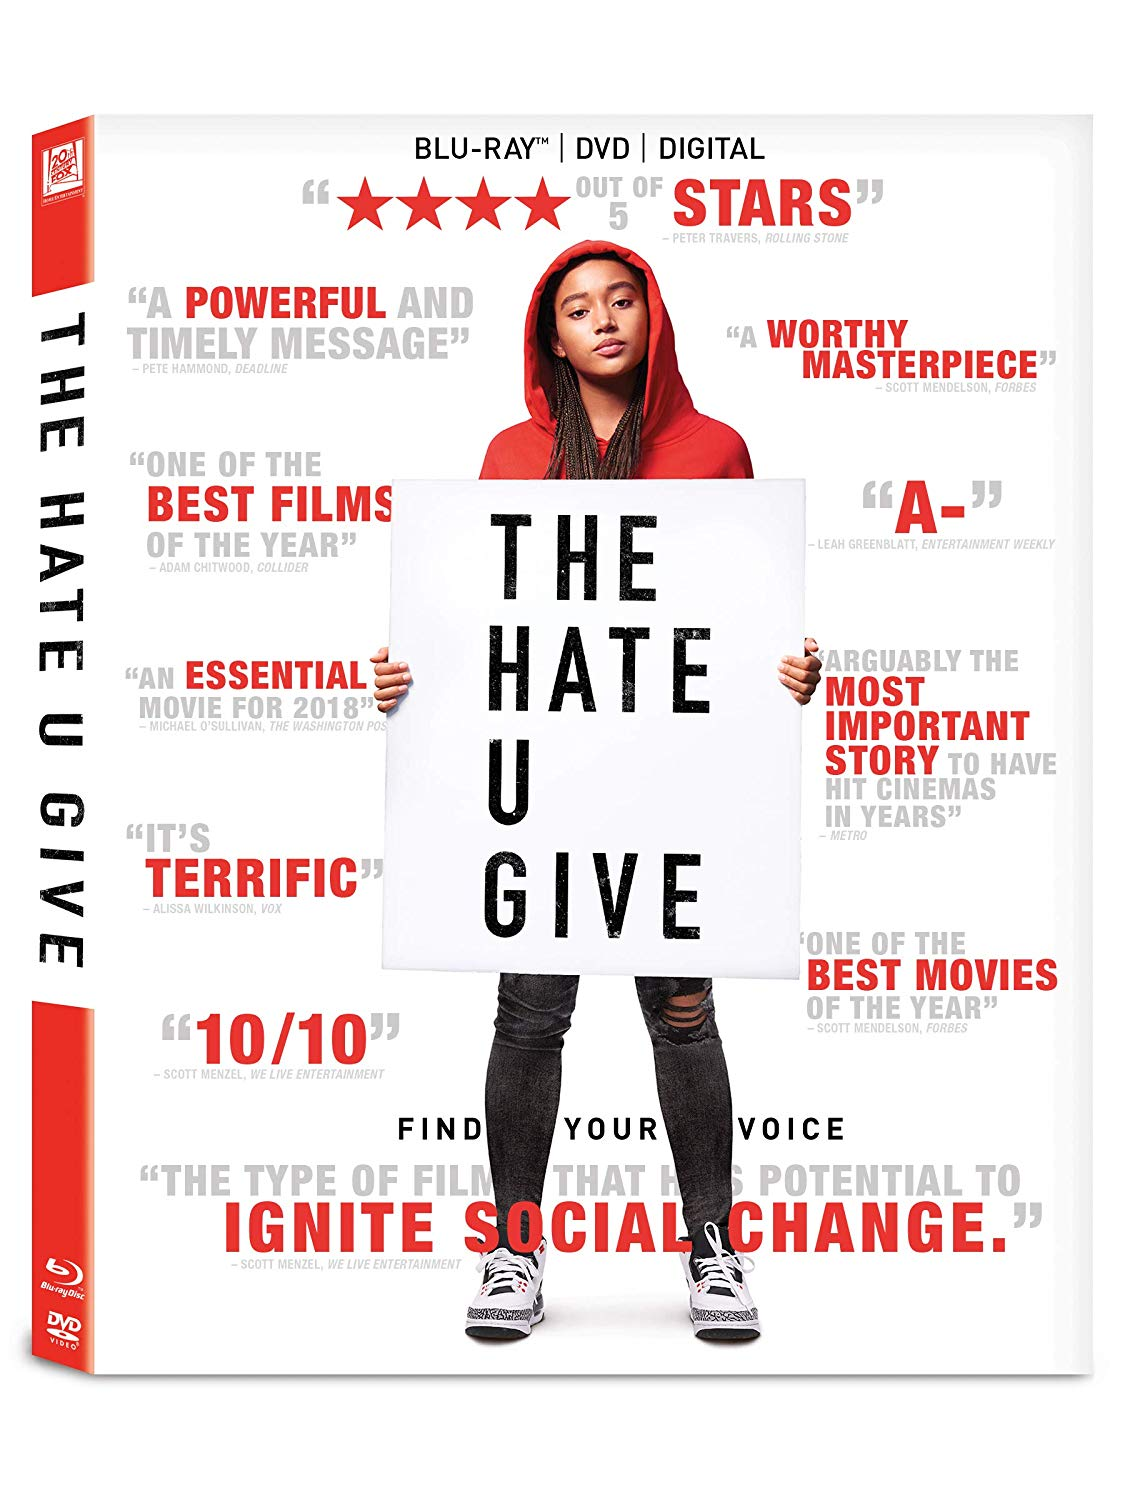 The Hate U Give [Movie]